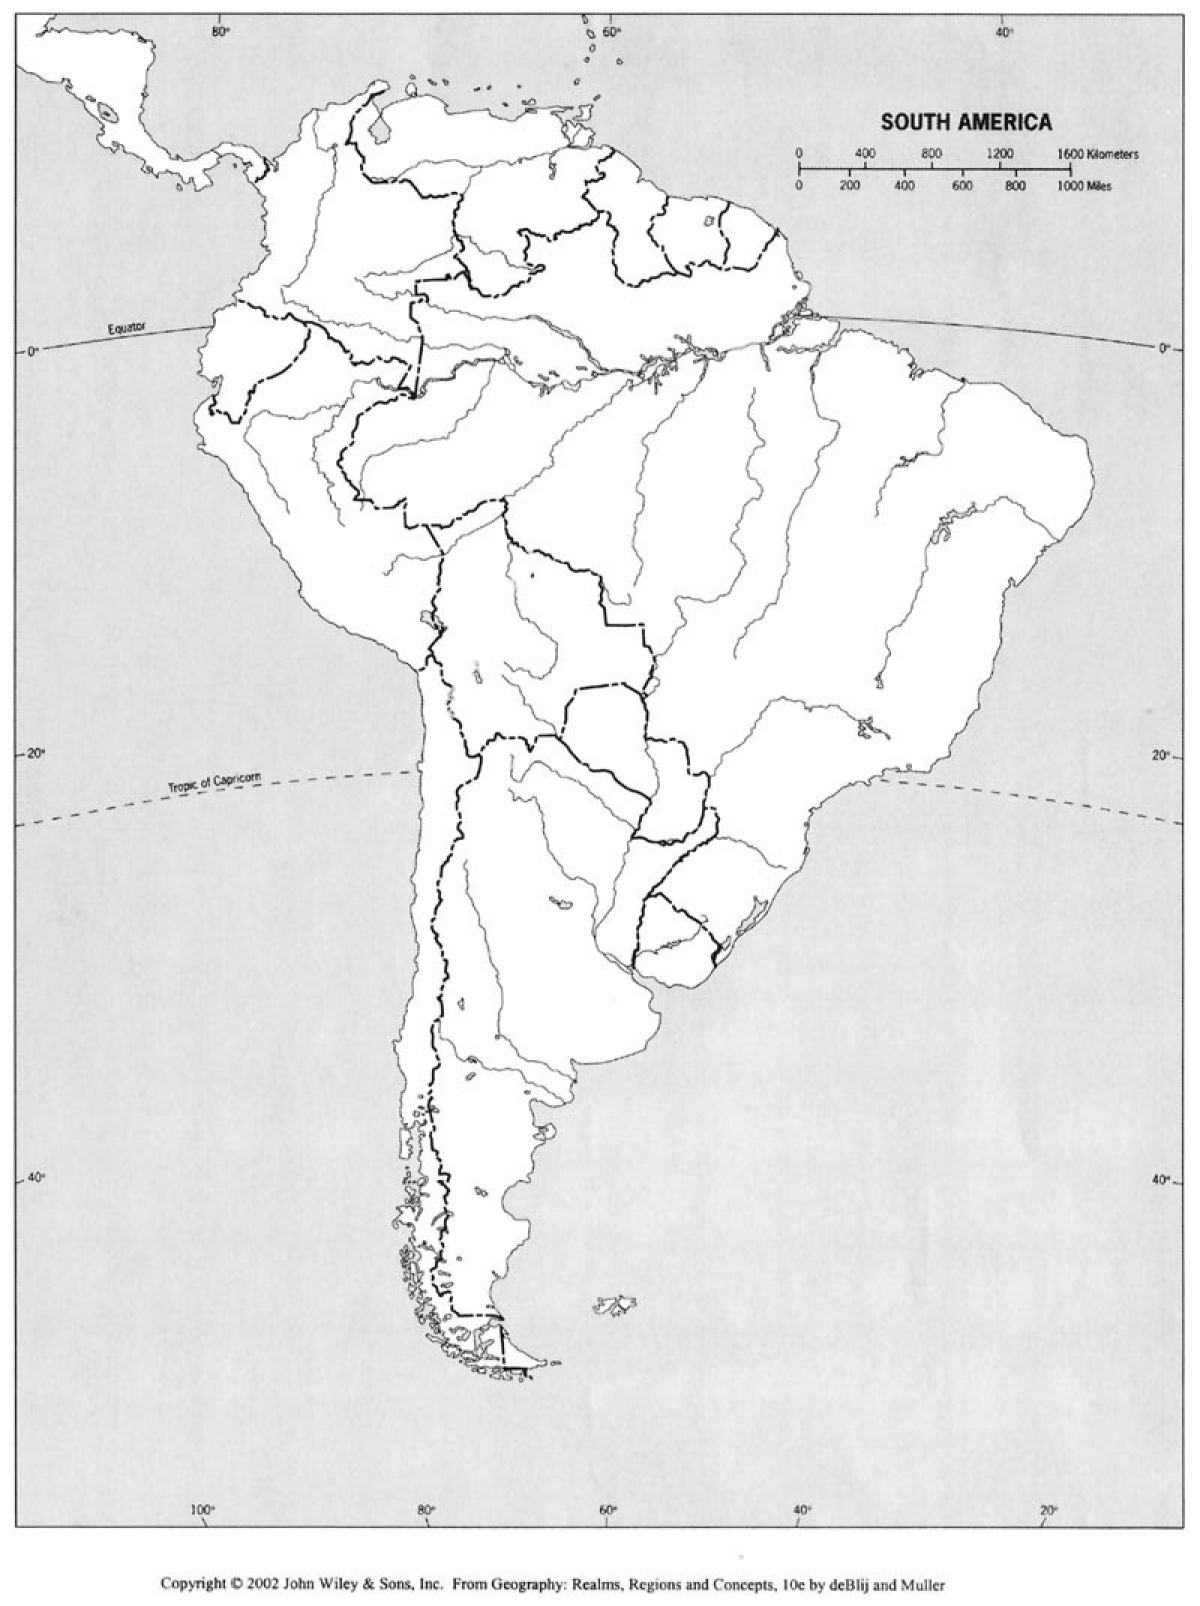 South America Blank Map Fans Share Images - North america physical map test